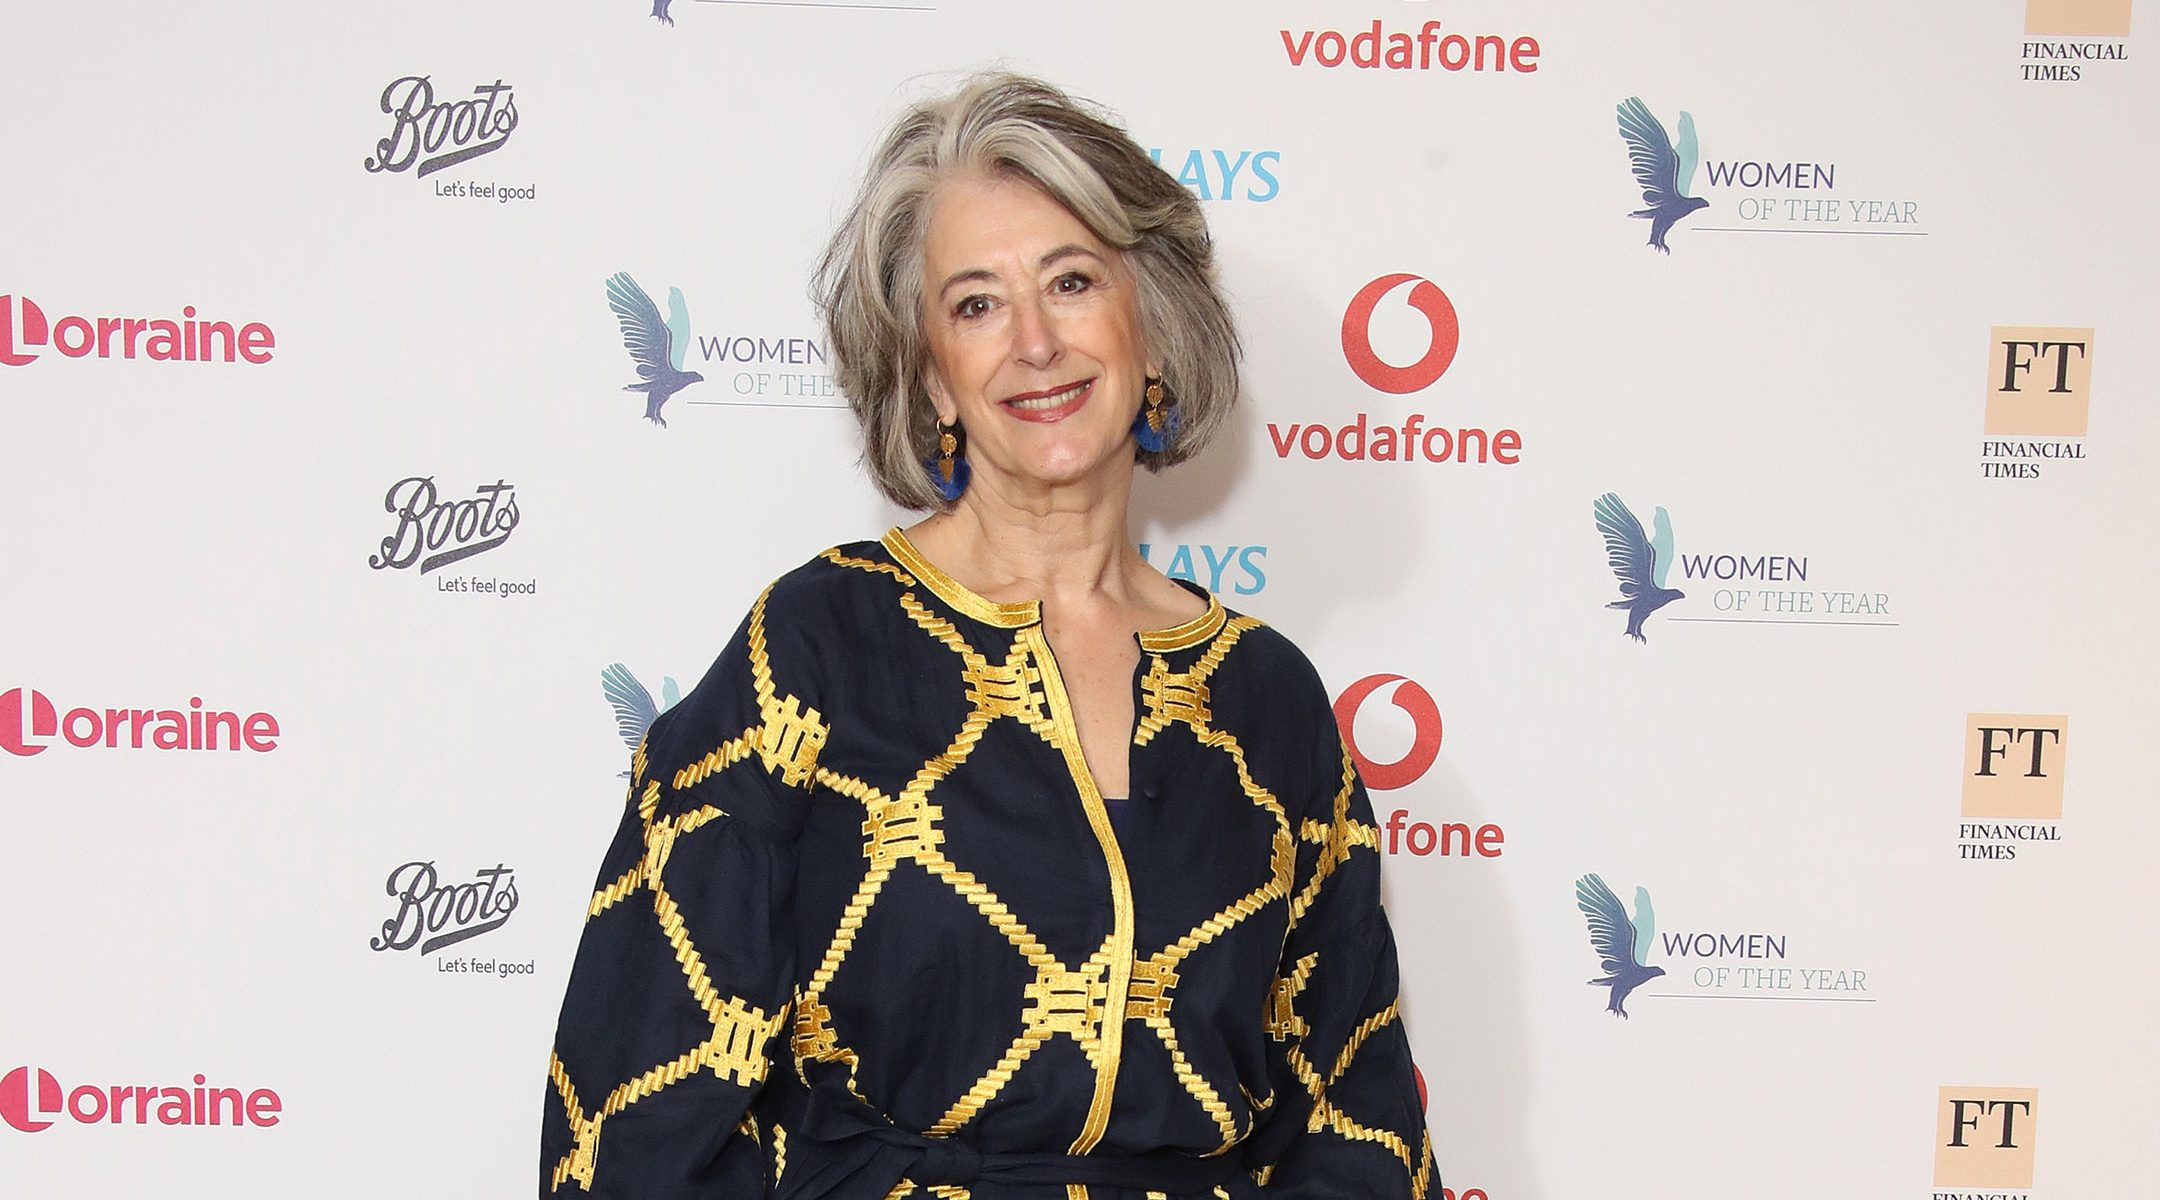 Maureen Lipman attends the Woman Of The Year Awards Lunch at Royal Lancaster Hotel in London, UK on Oct. 14, 2019. (Mike Marsland/WireImage)